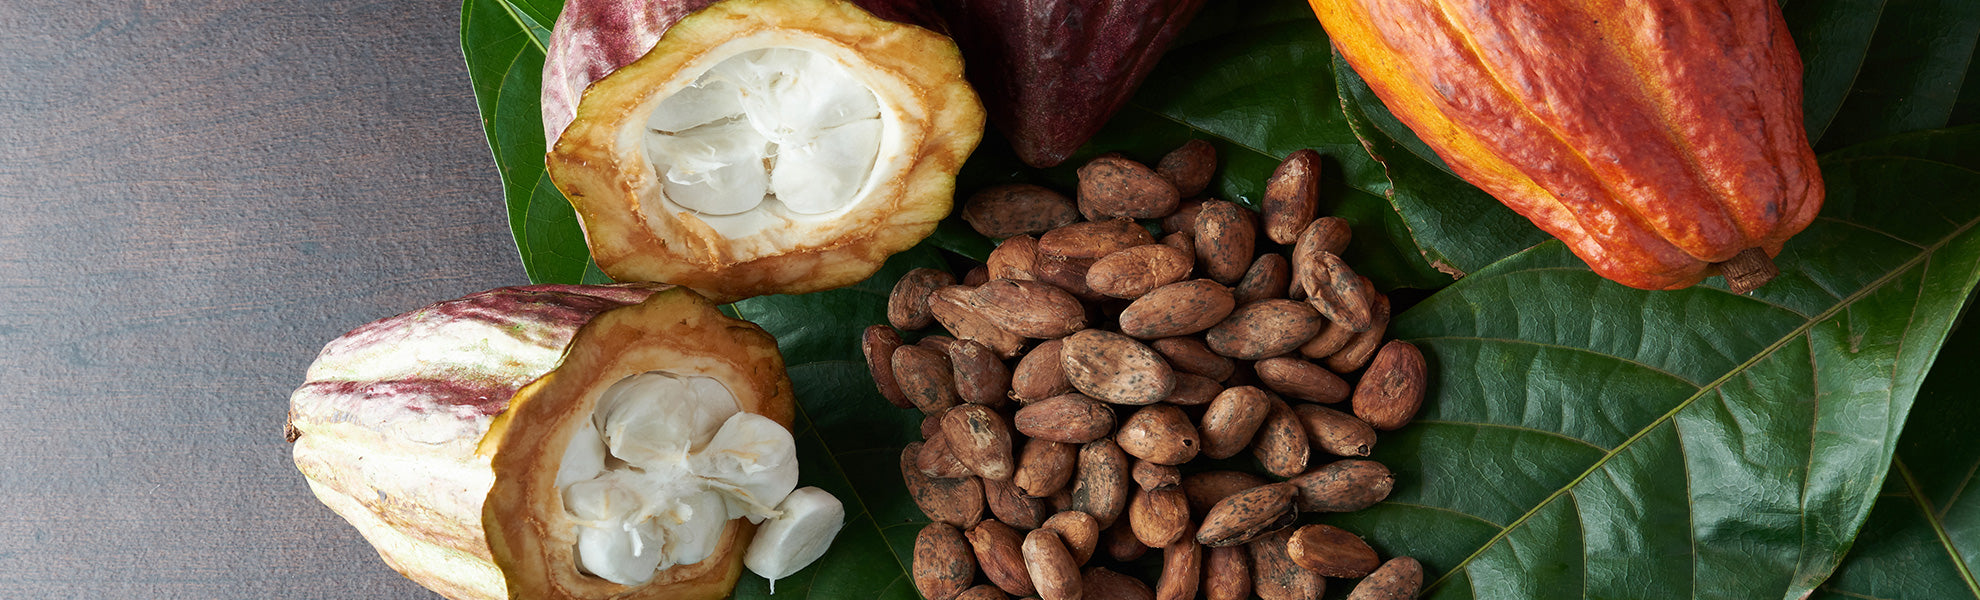 cacao raw benefici